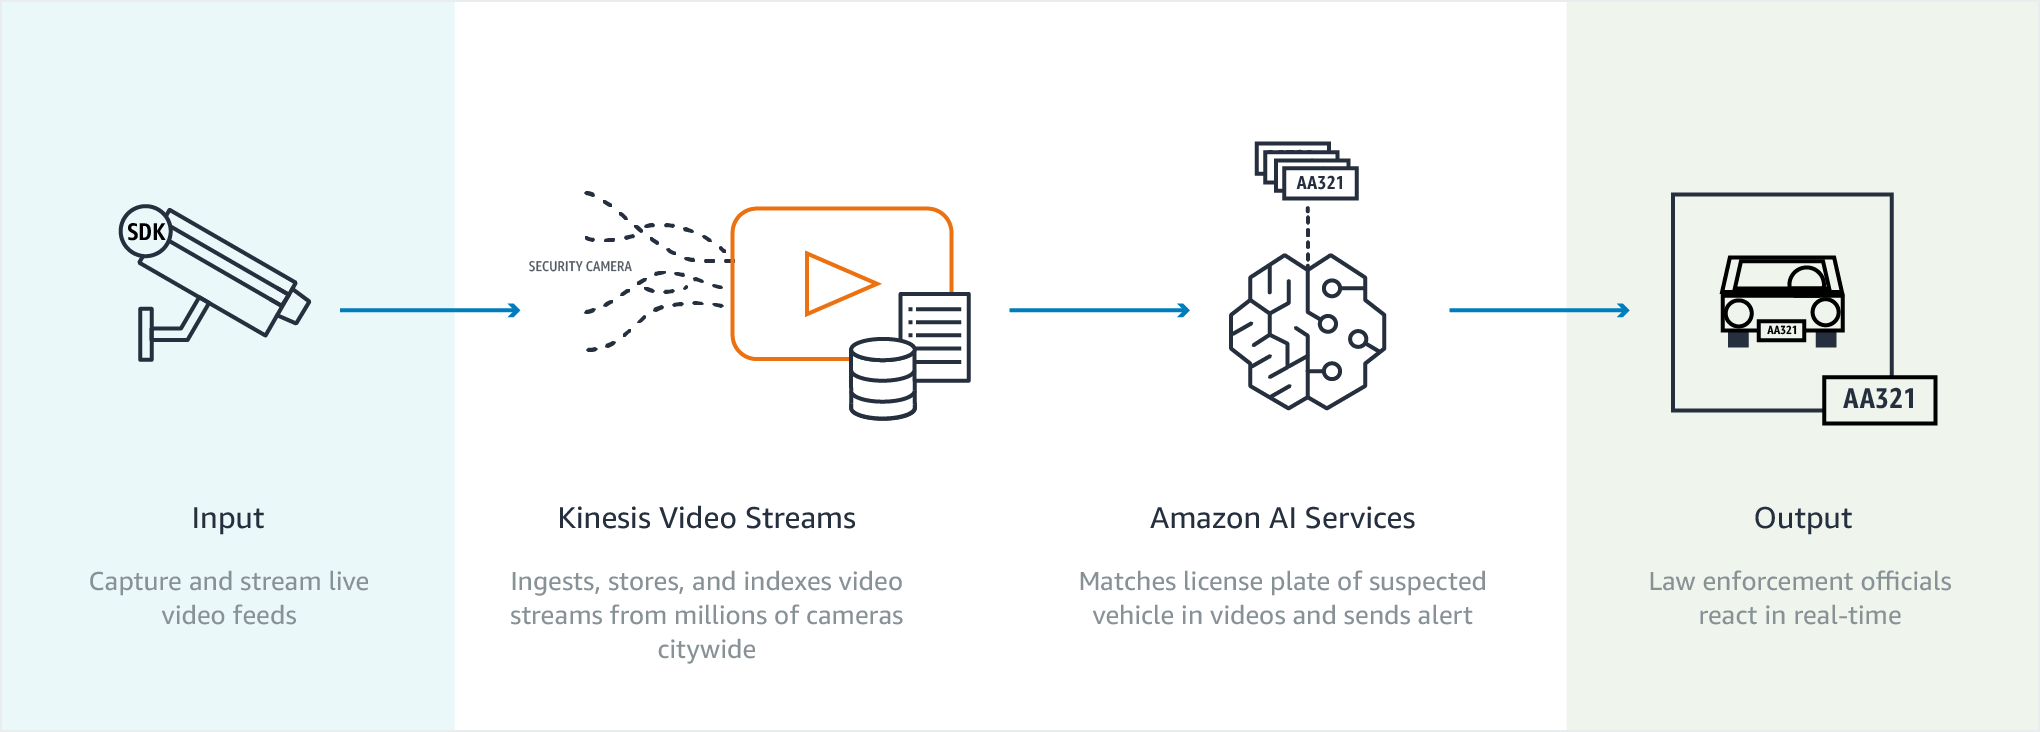 diagram-kinesis-video-streams-smart-city-use-case